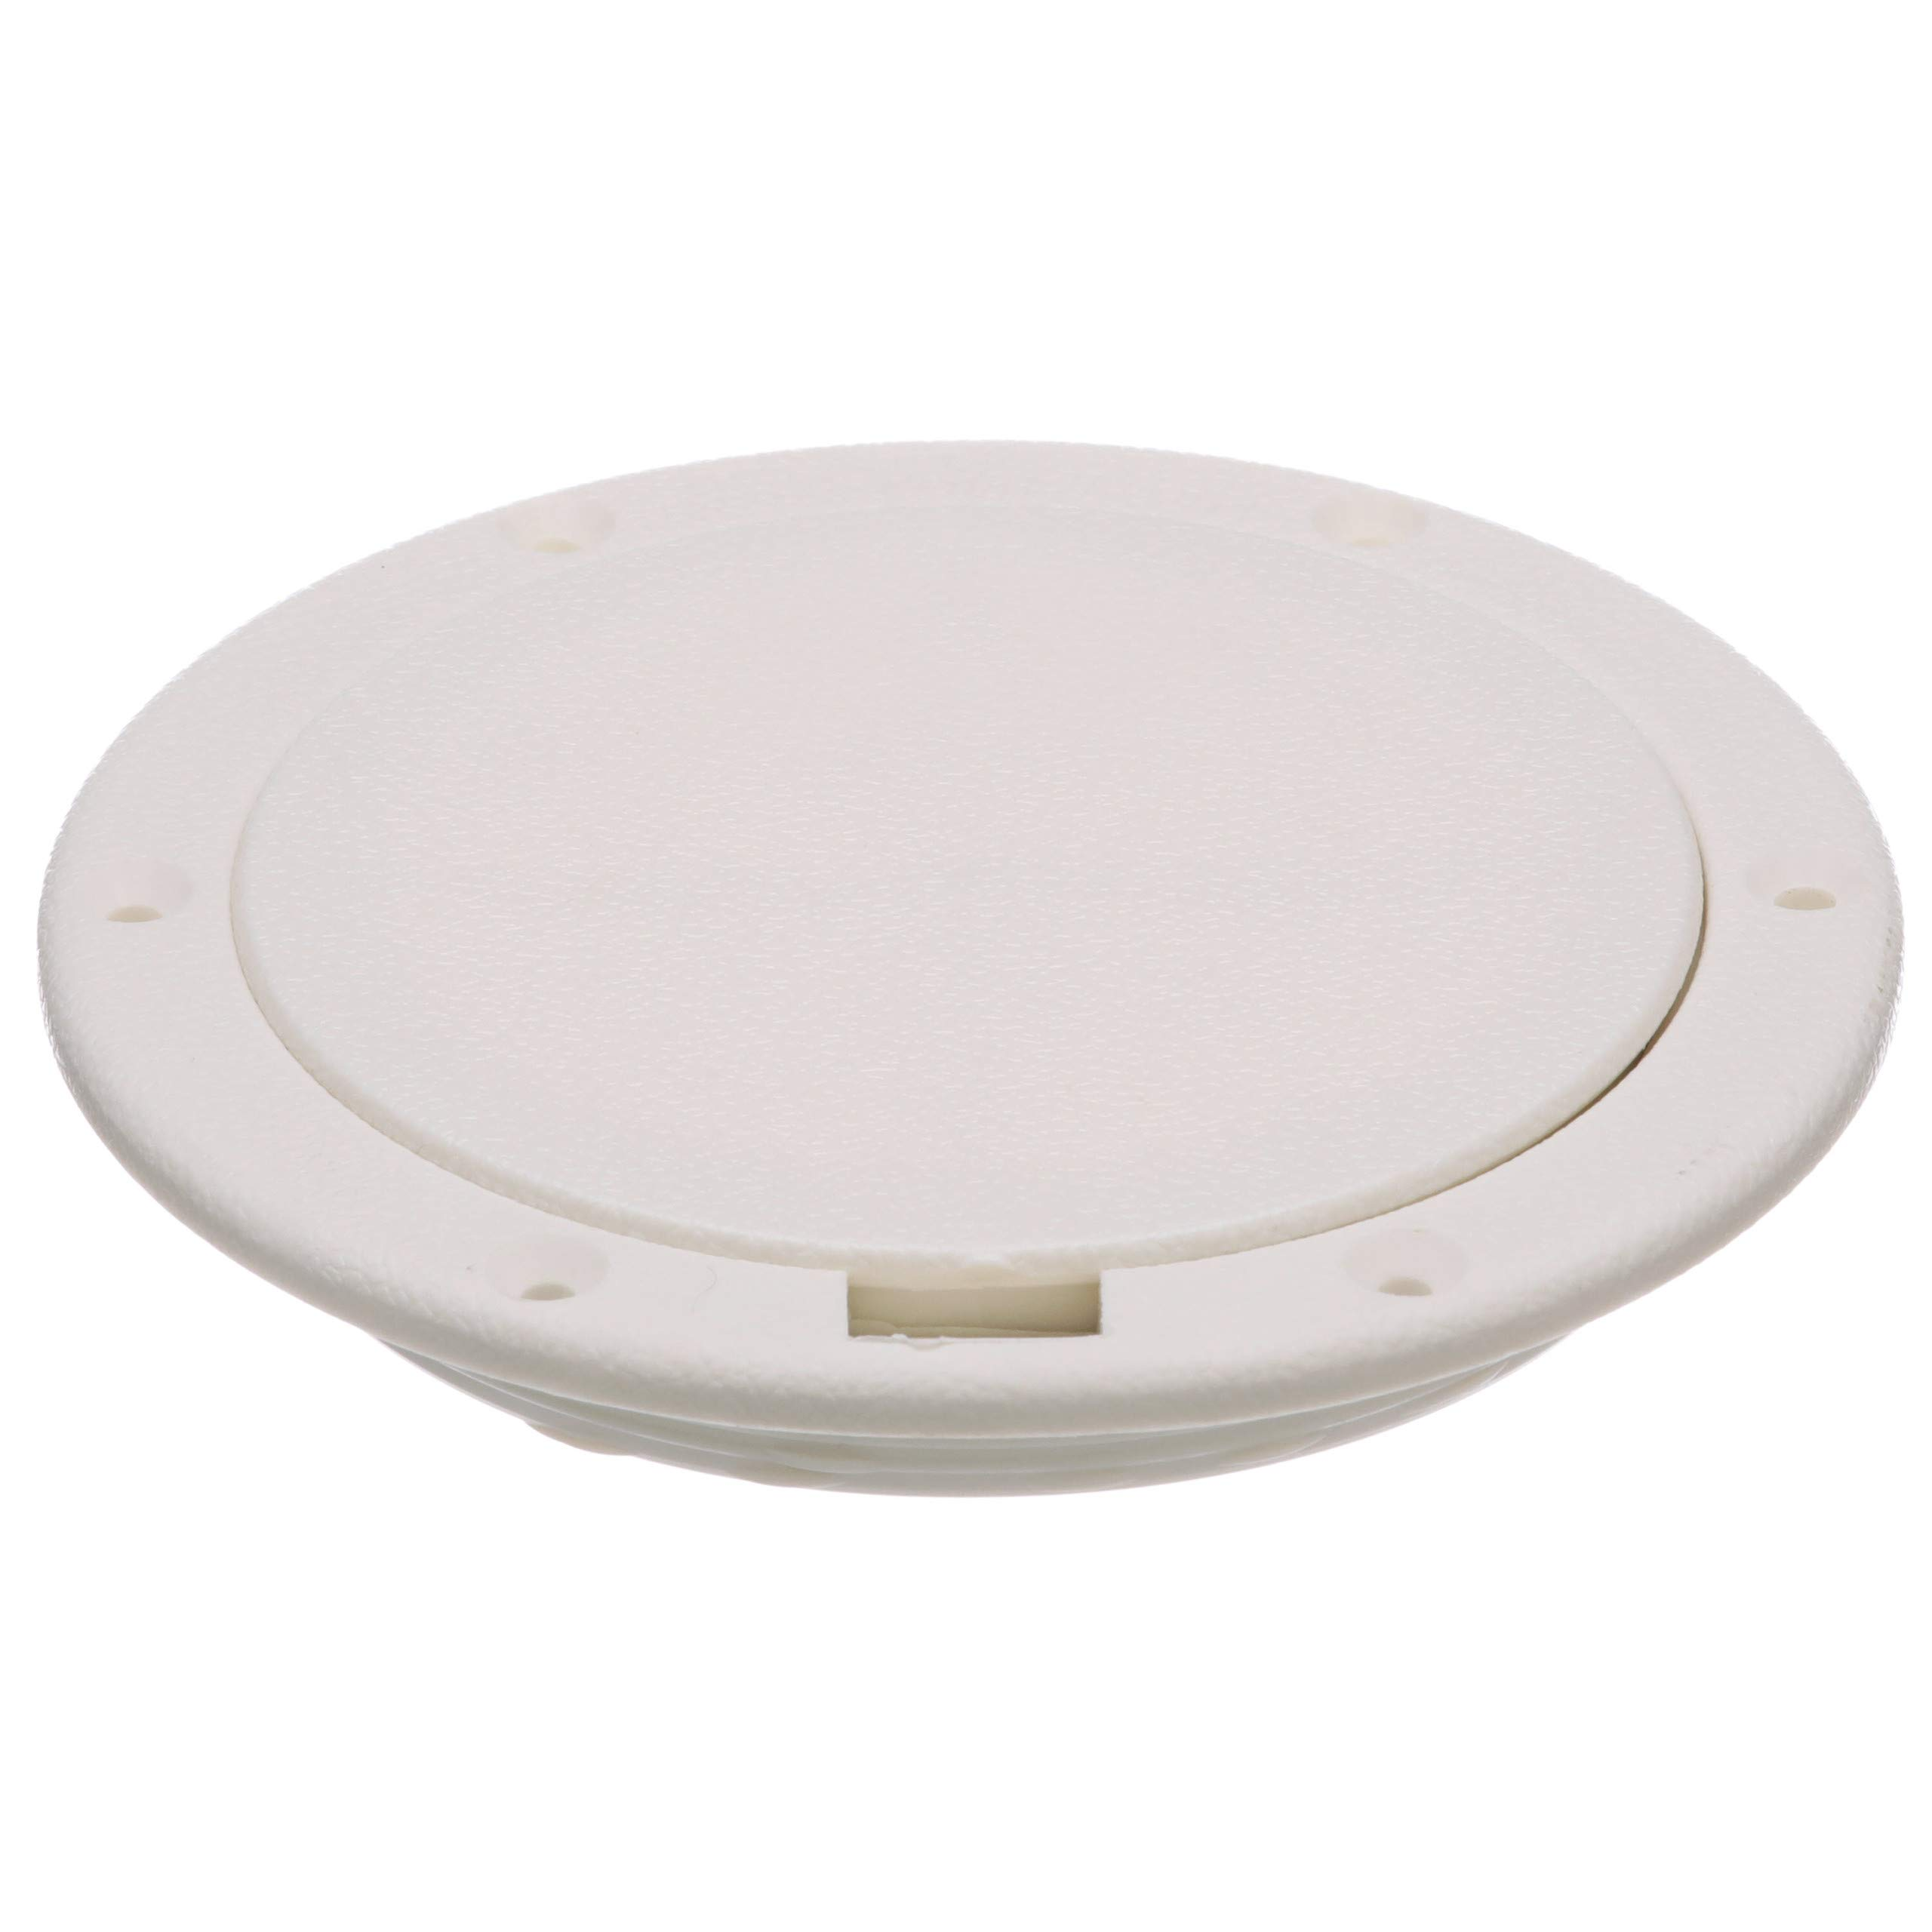 Seachoice 39581 Pry-Up Deck Plate - White - Watertight - Up to 10-5/8 Inch Diameter Hole by SEACHOICE